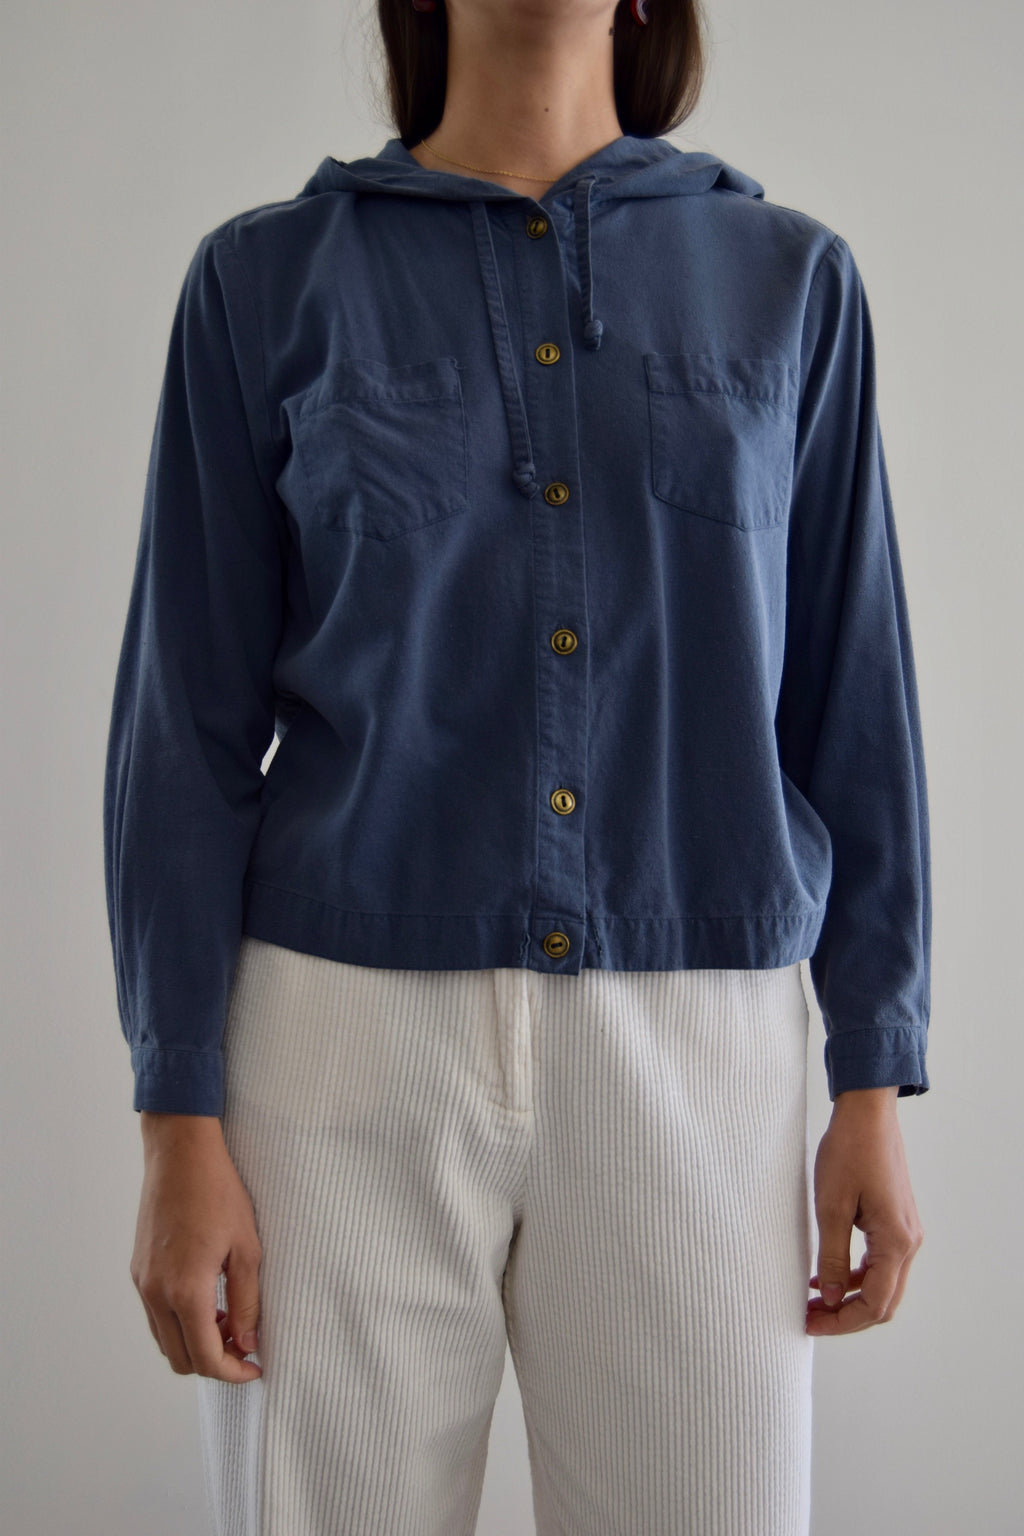 Dusty Blue Raw Silk Hooded Button Up Top FREE SHIPPING TO THE U.S.